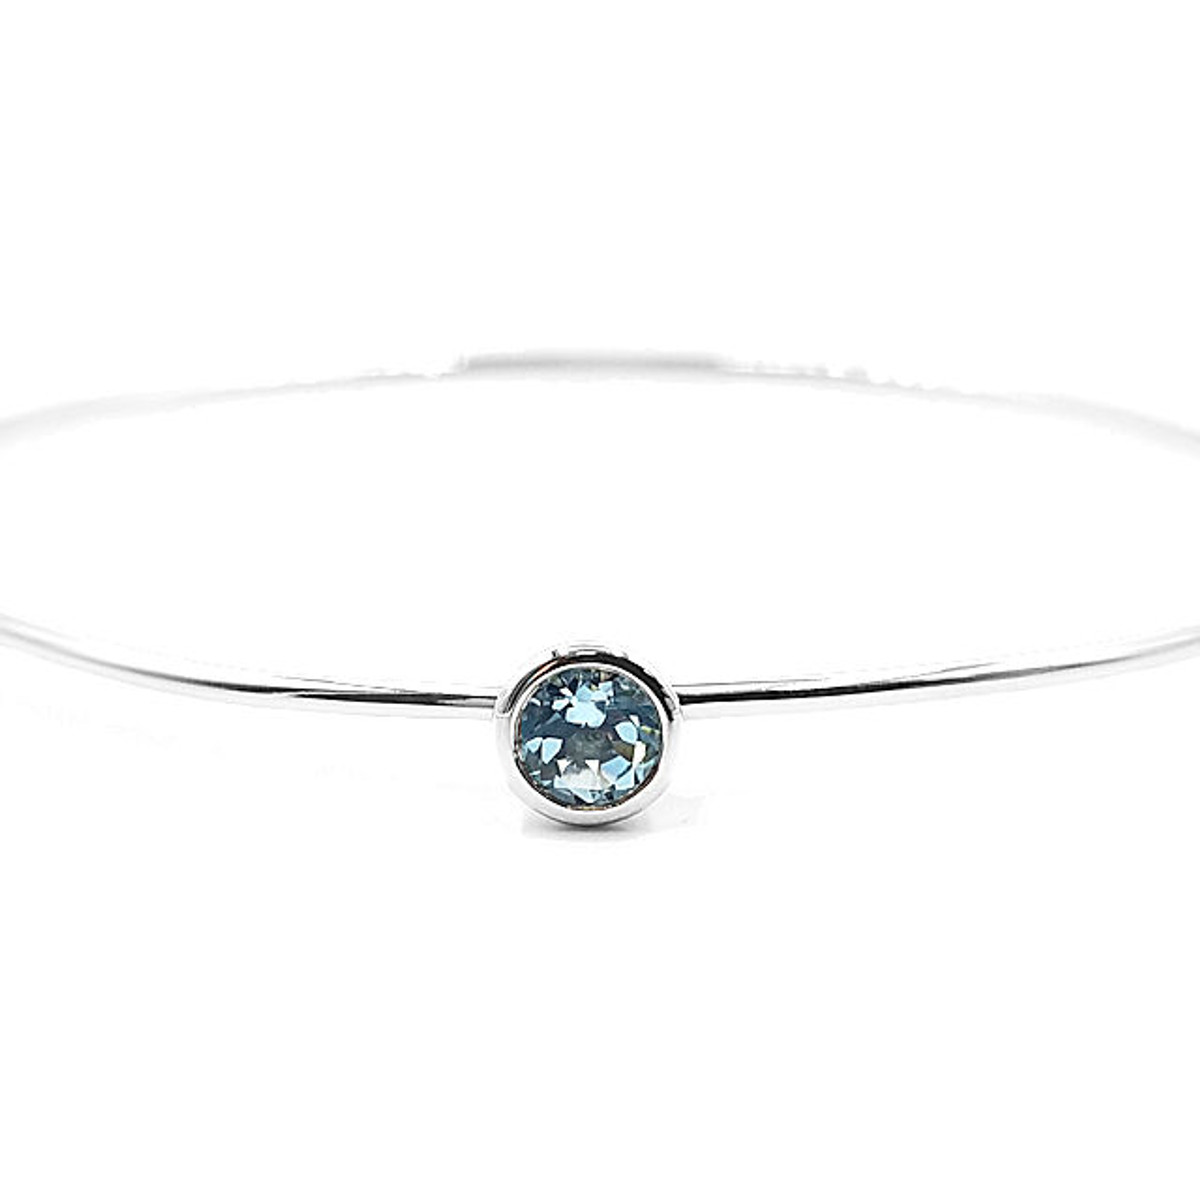 Sterling silver sky blue topaz bangle